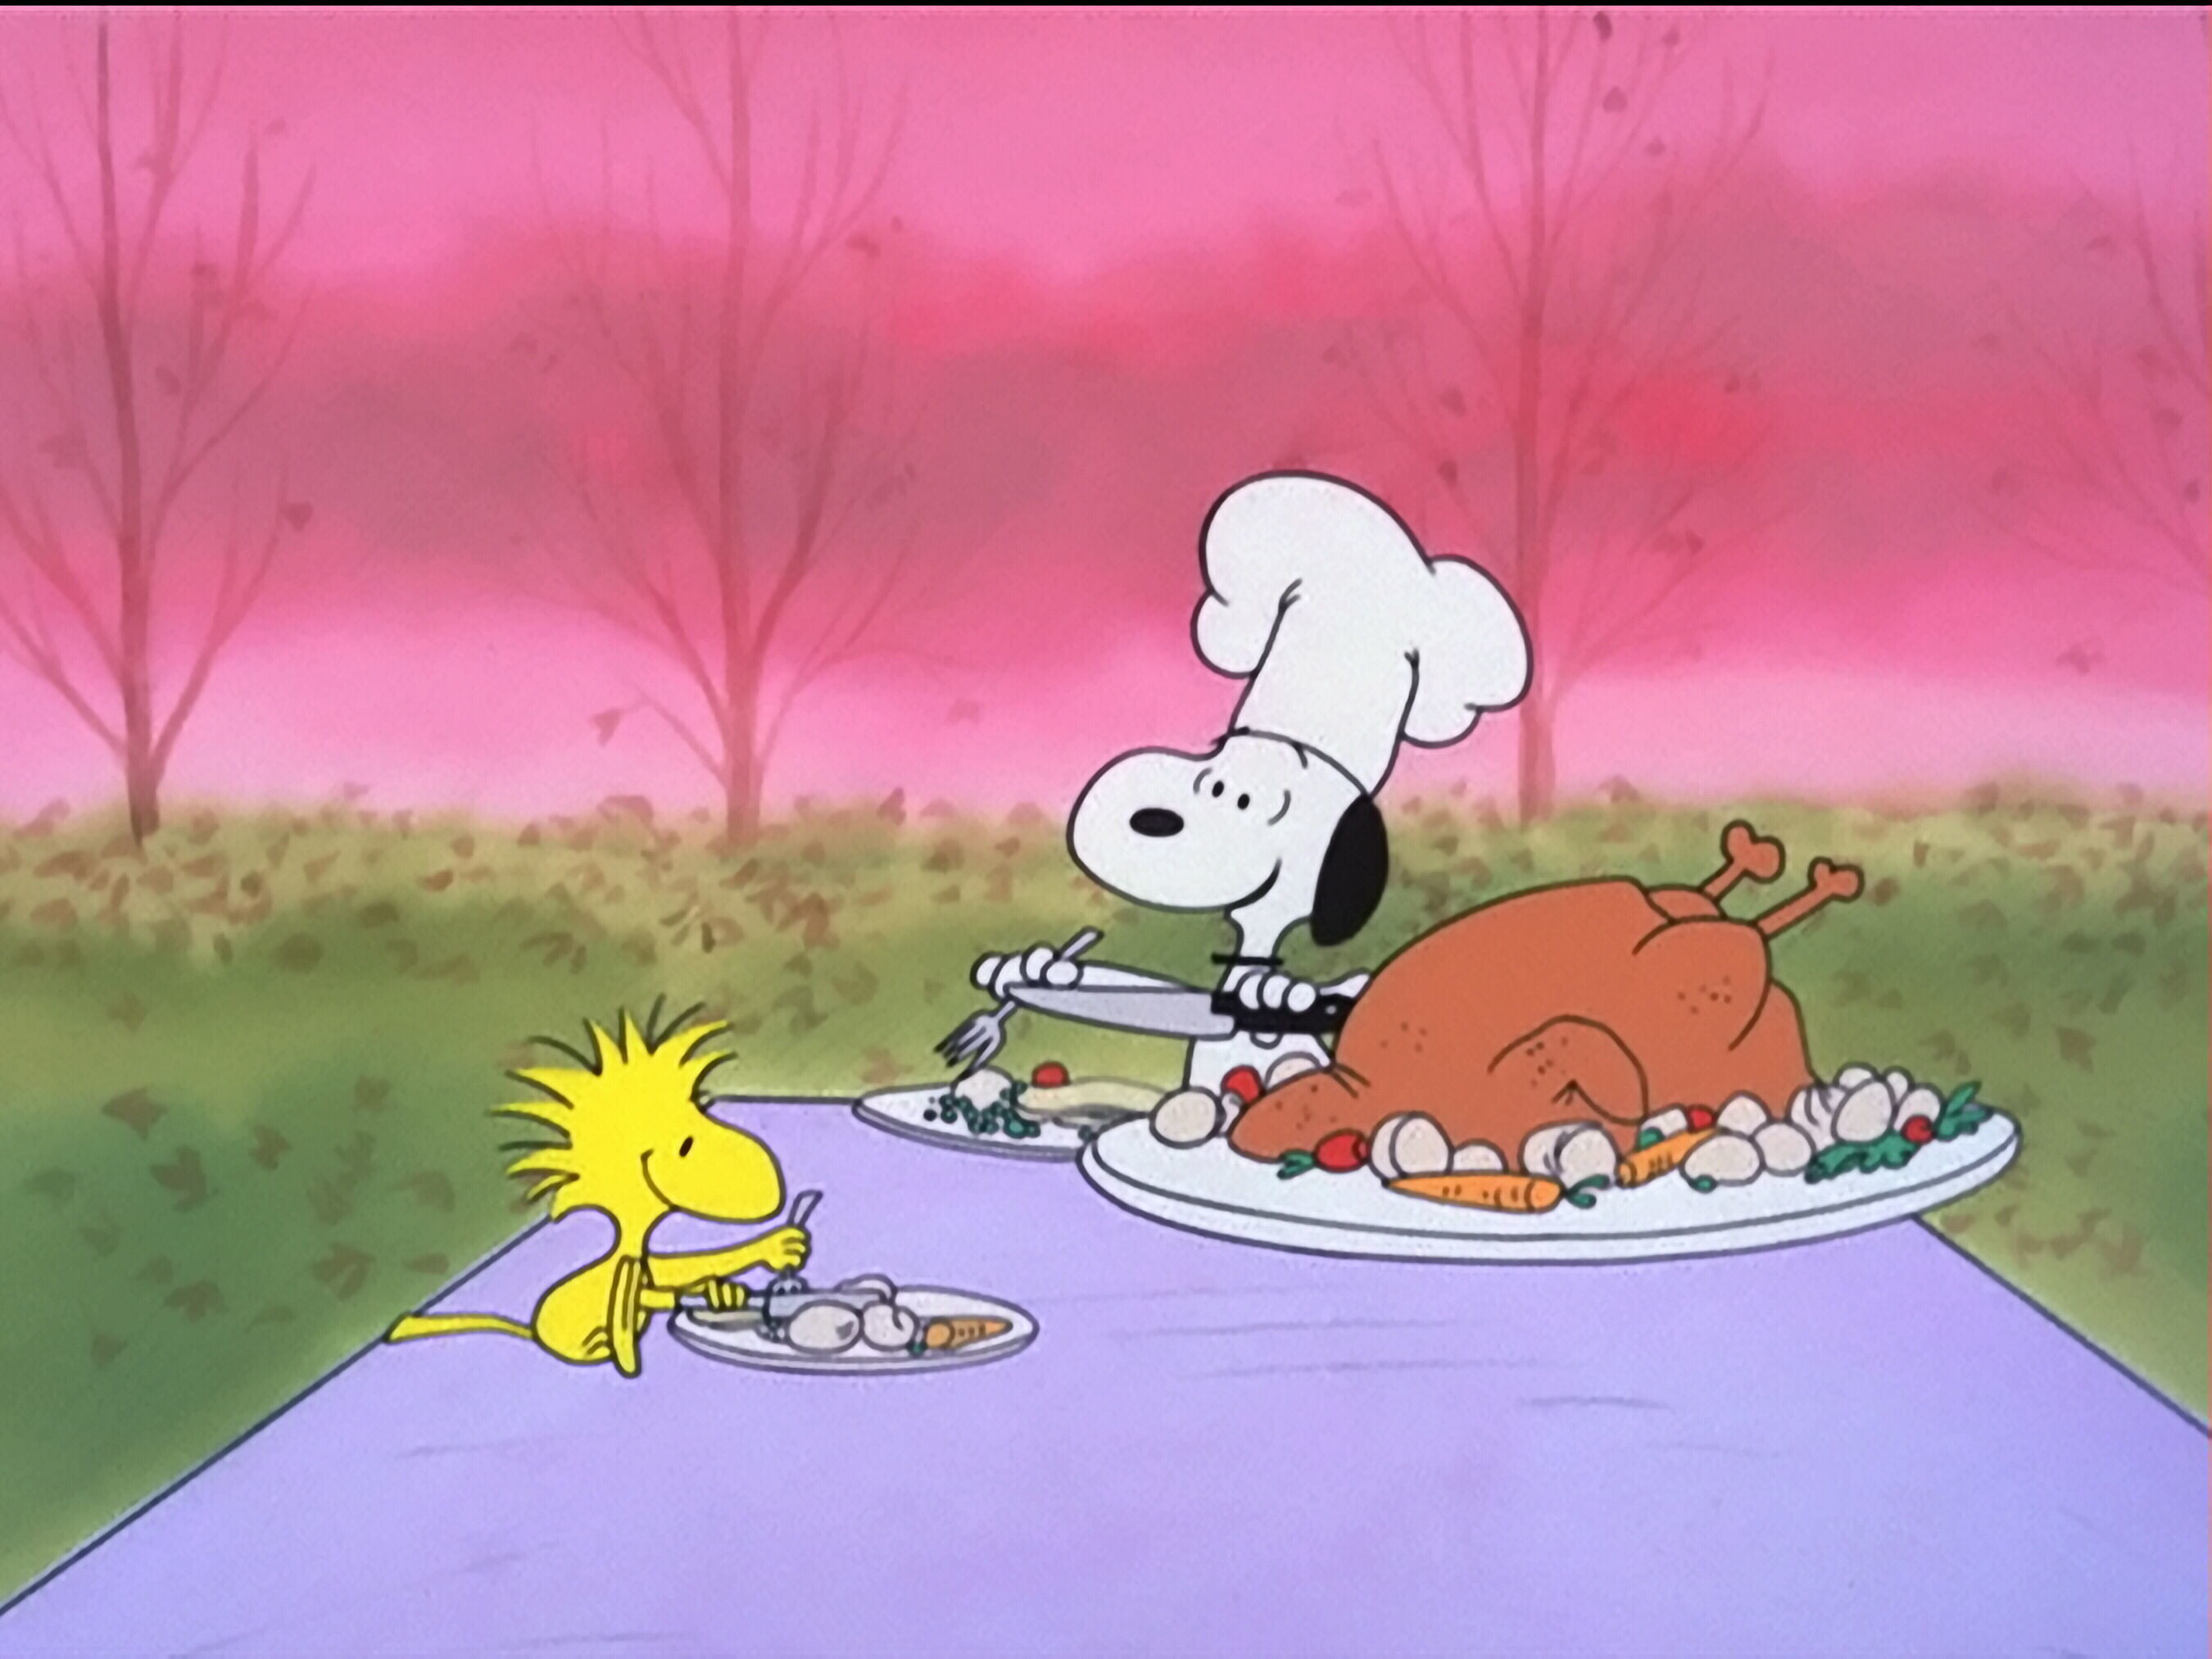 A Charlie Brown Thanksgiving image (1)